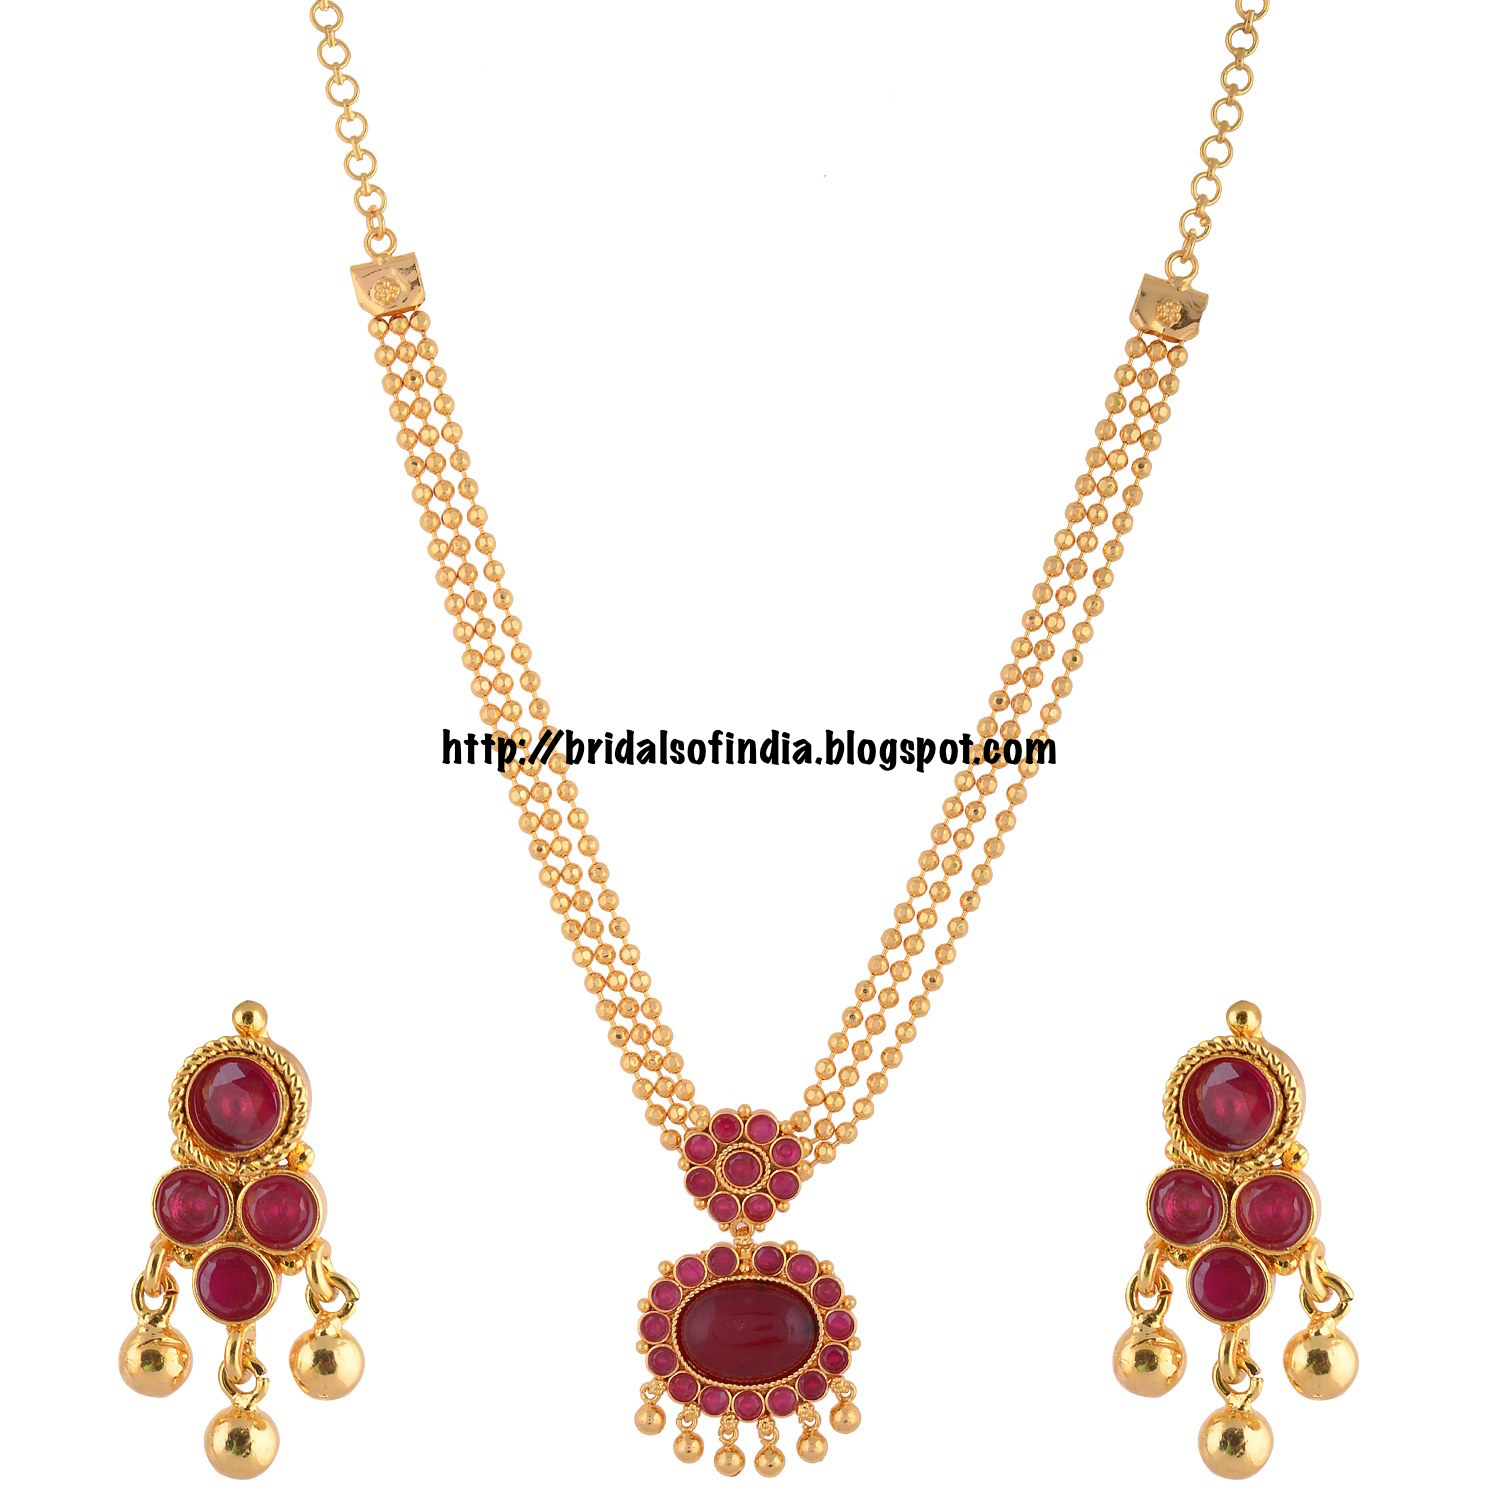 1 Gram Jewellery: Fashion World: Ganapathy Gems South Indian Traditional